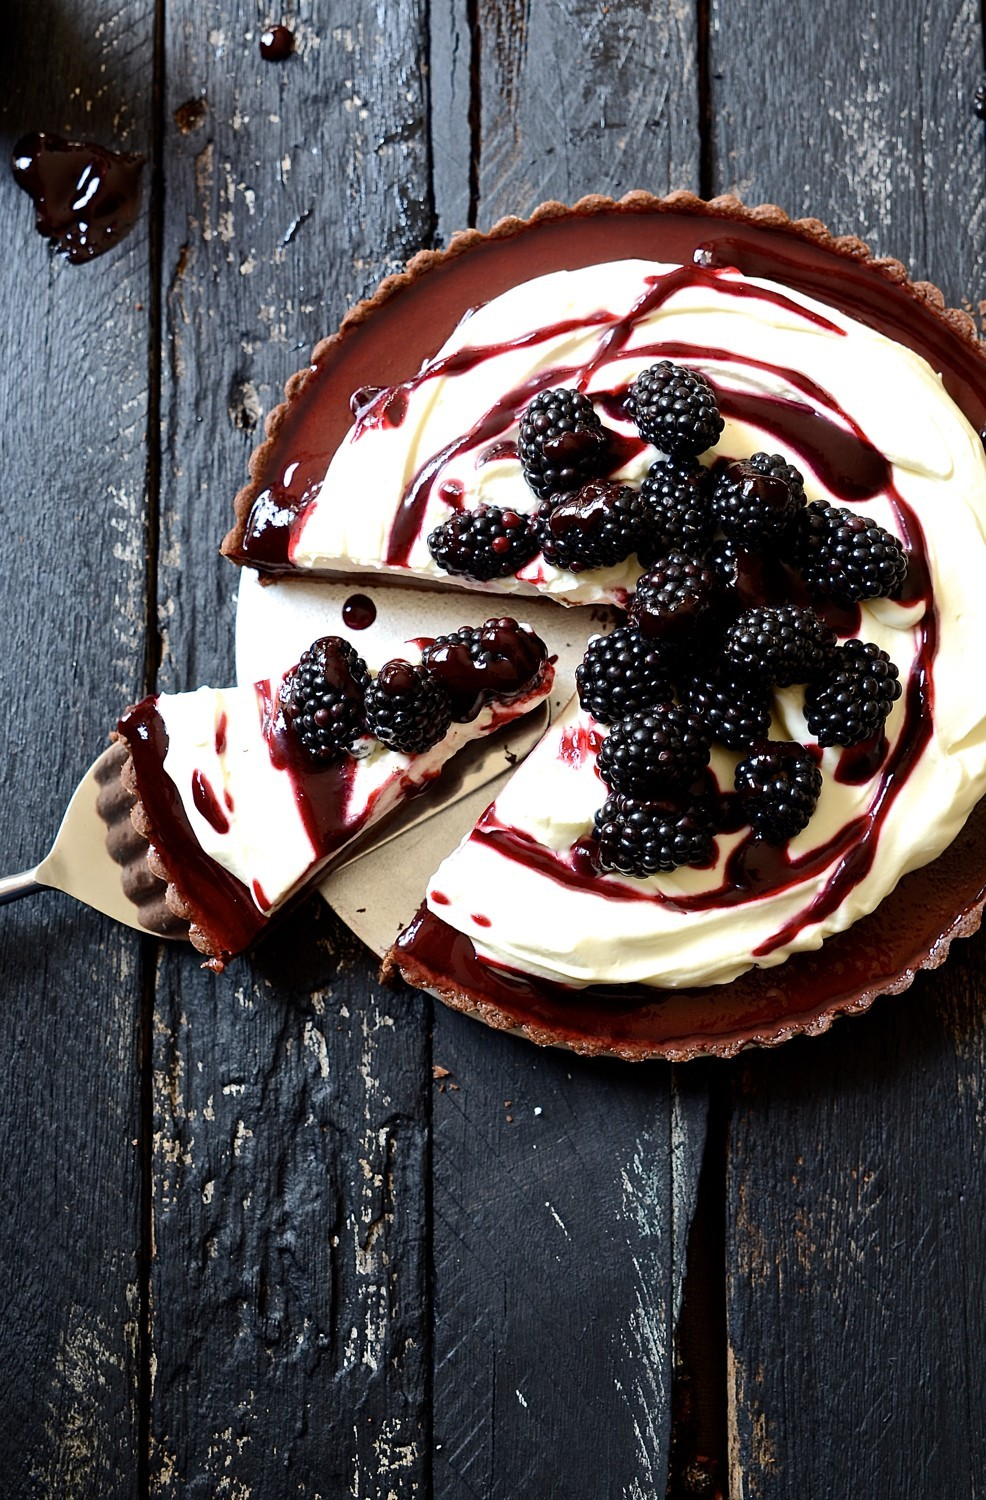 Baked blackberry chocolate fondant tart